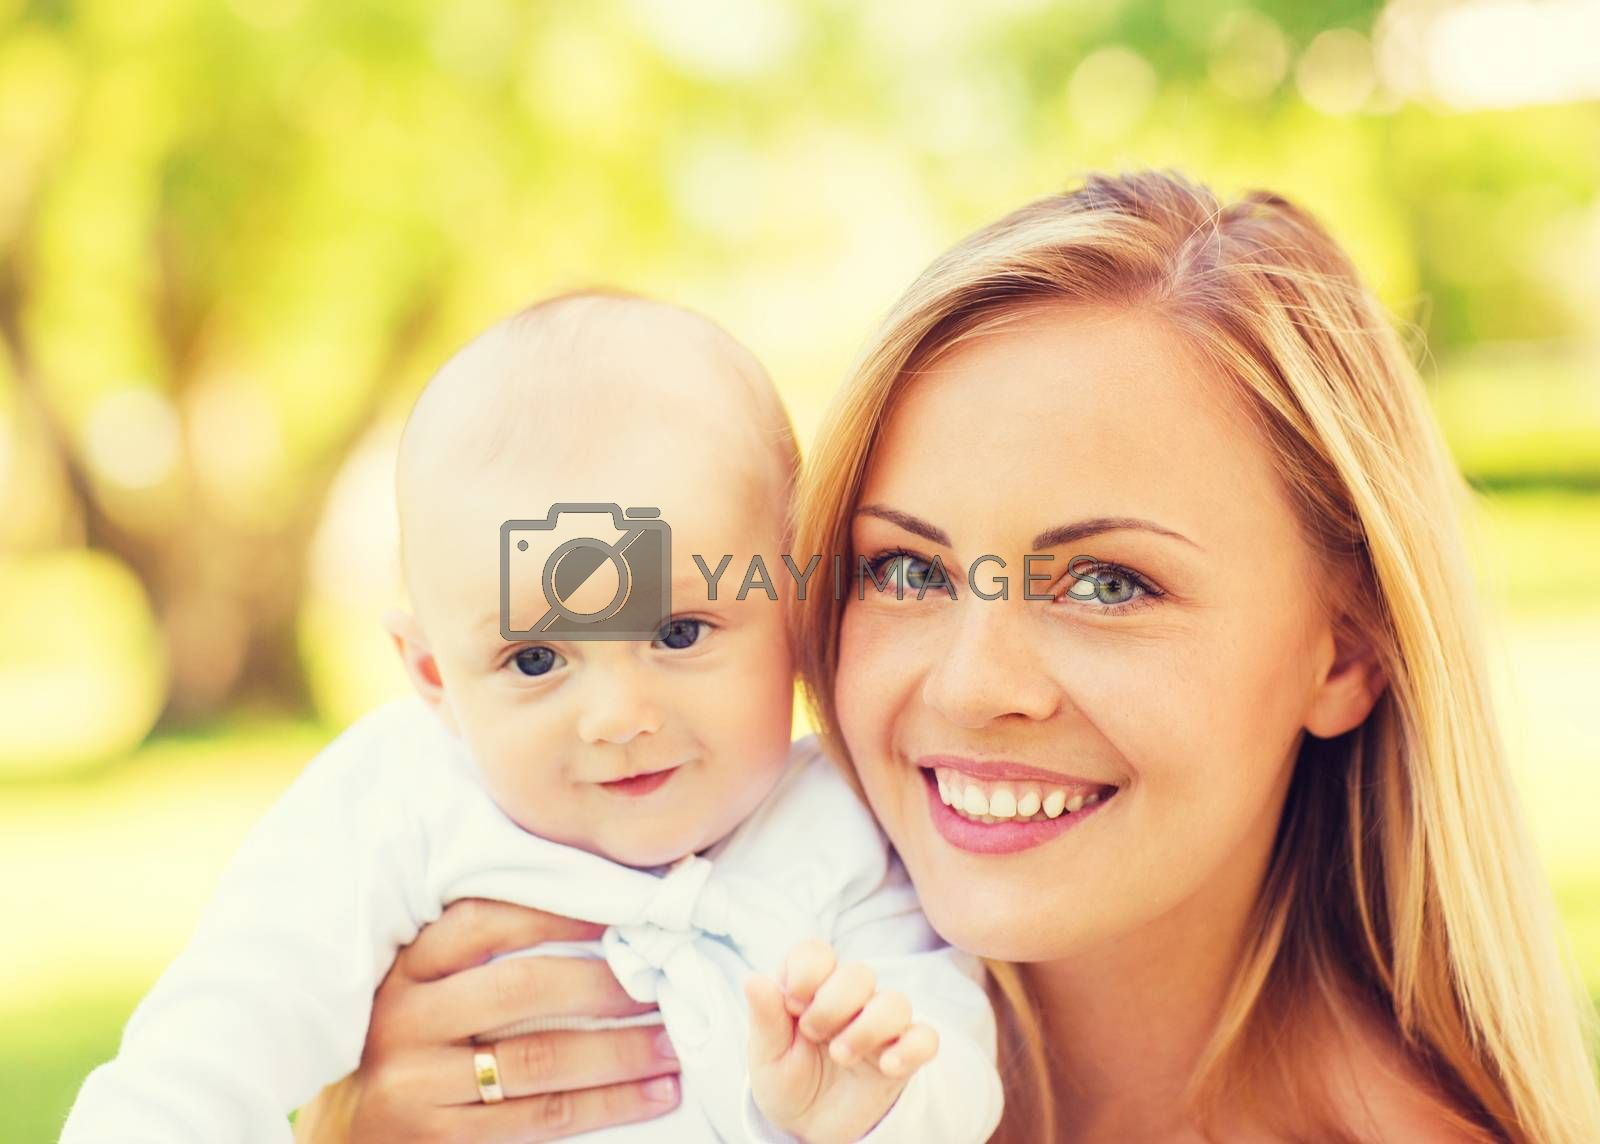 family, child and parenthood concept - close up of happy mother with little baby in park